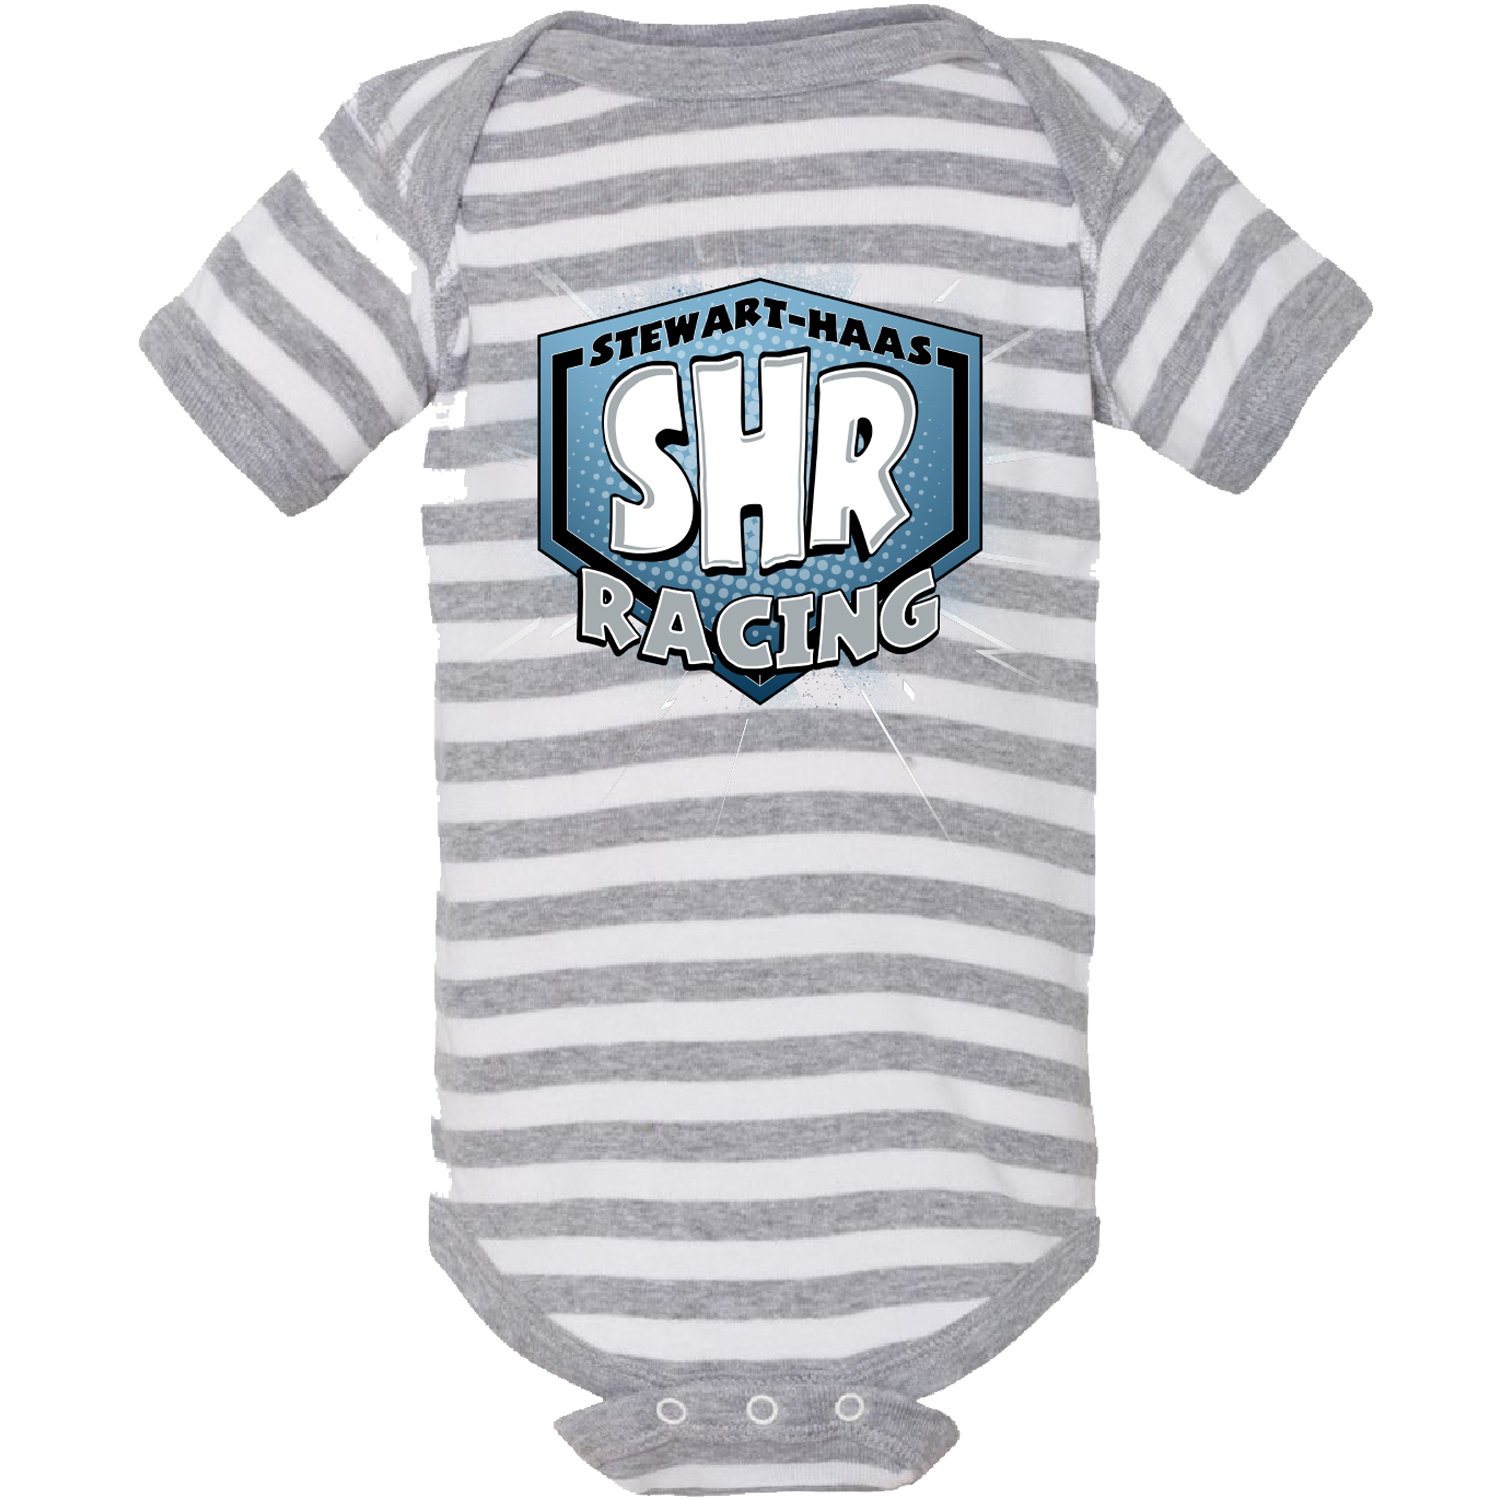 Exclusive Stewart-Haas Racing Grey Stripe Onesie